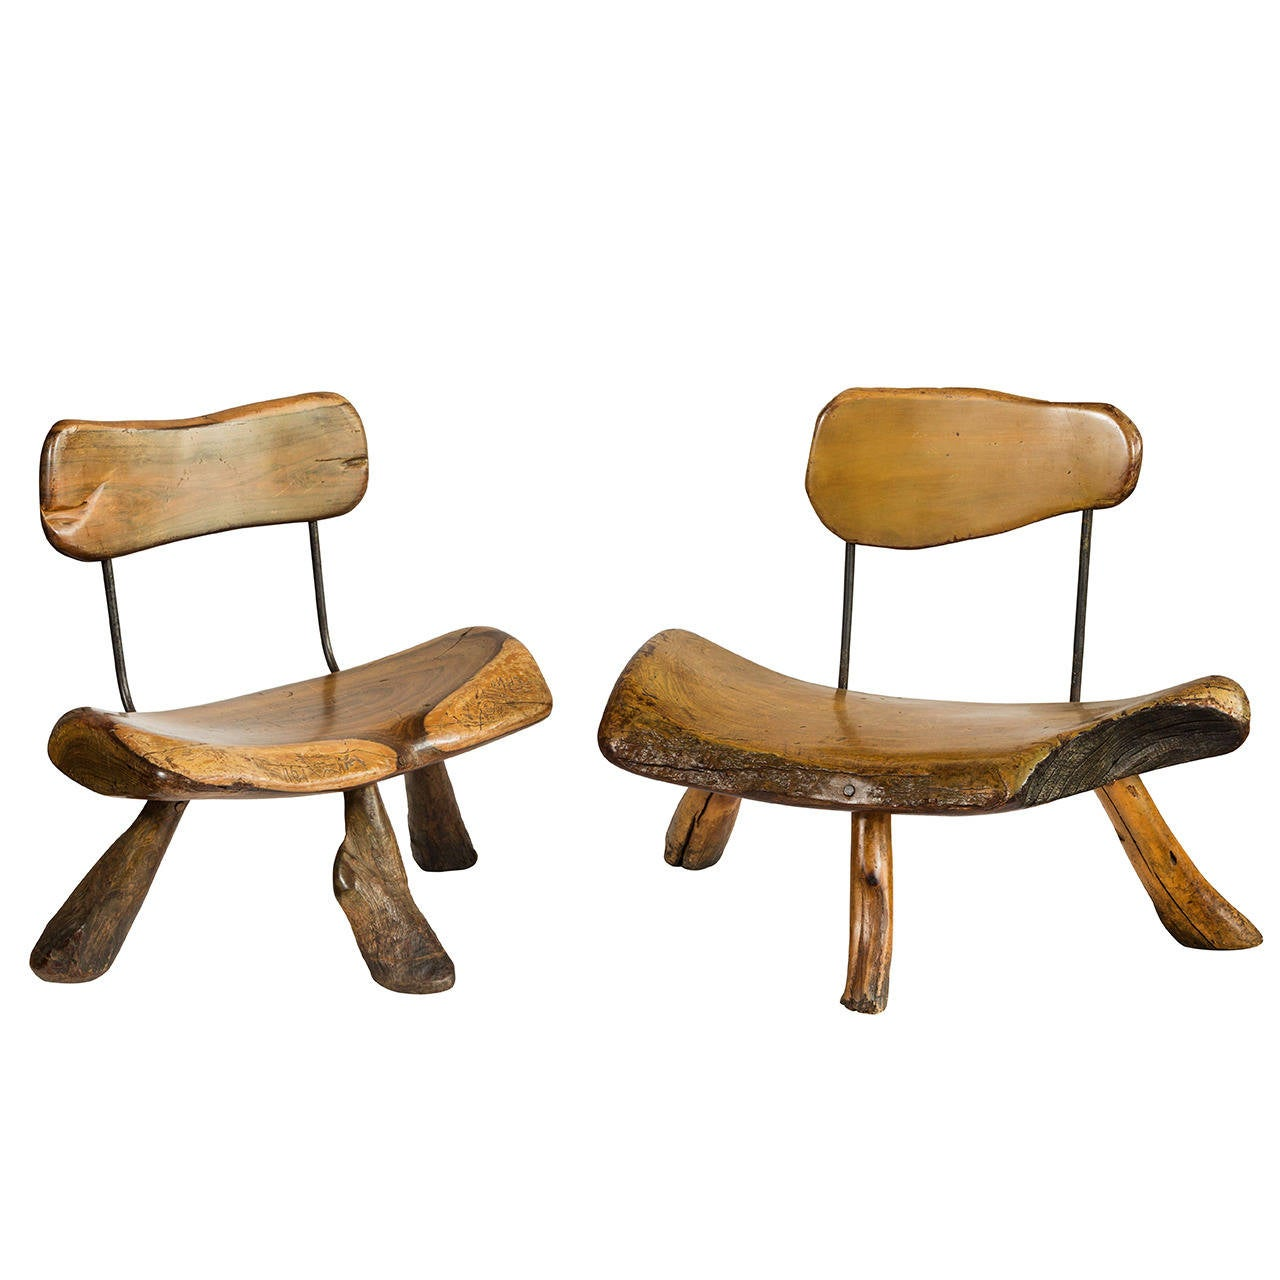 Handmade Wood And Iron Chairs At 1stdibs